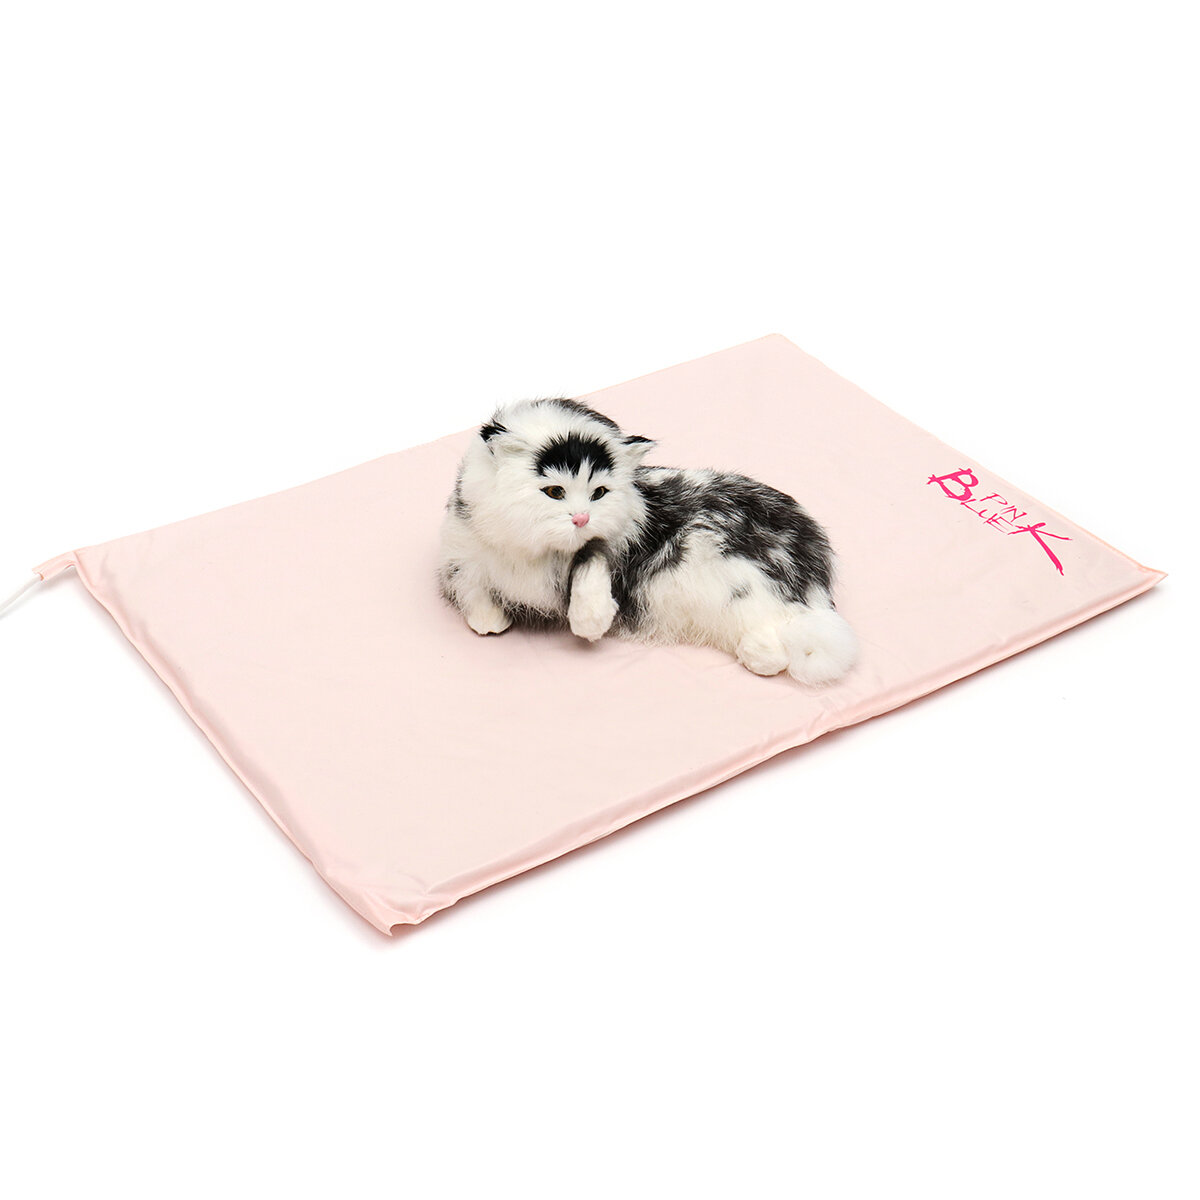 40x40cm Animals Bed Heater Mat Heating Pad Good Cat Dog Bed Body Winter Warmer Carpet Pet Plush Electric Blanket Heated Seat Home Appliances Home Heaters